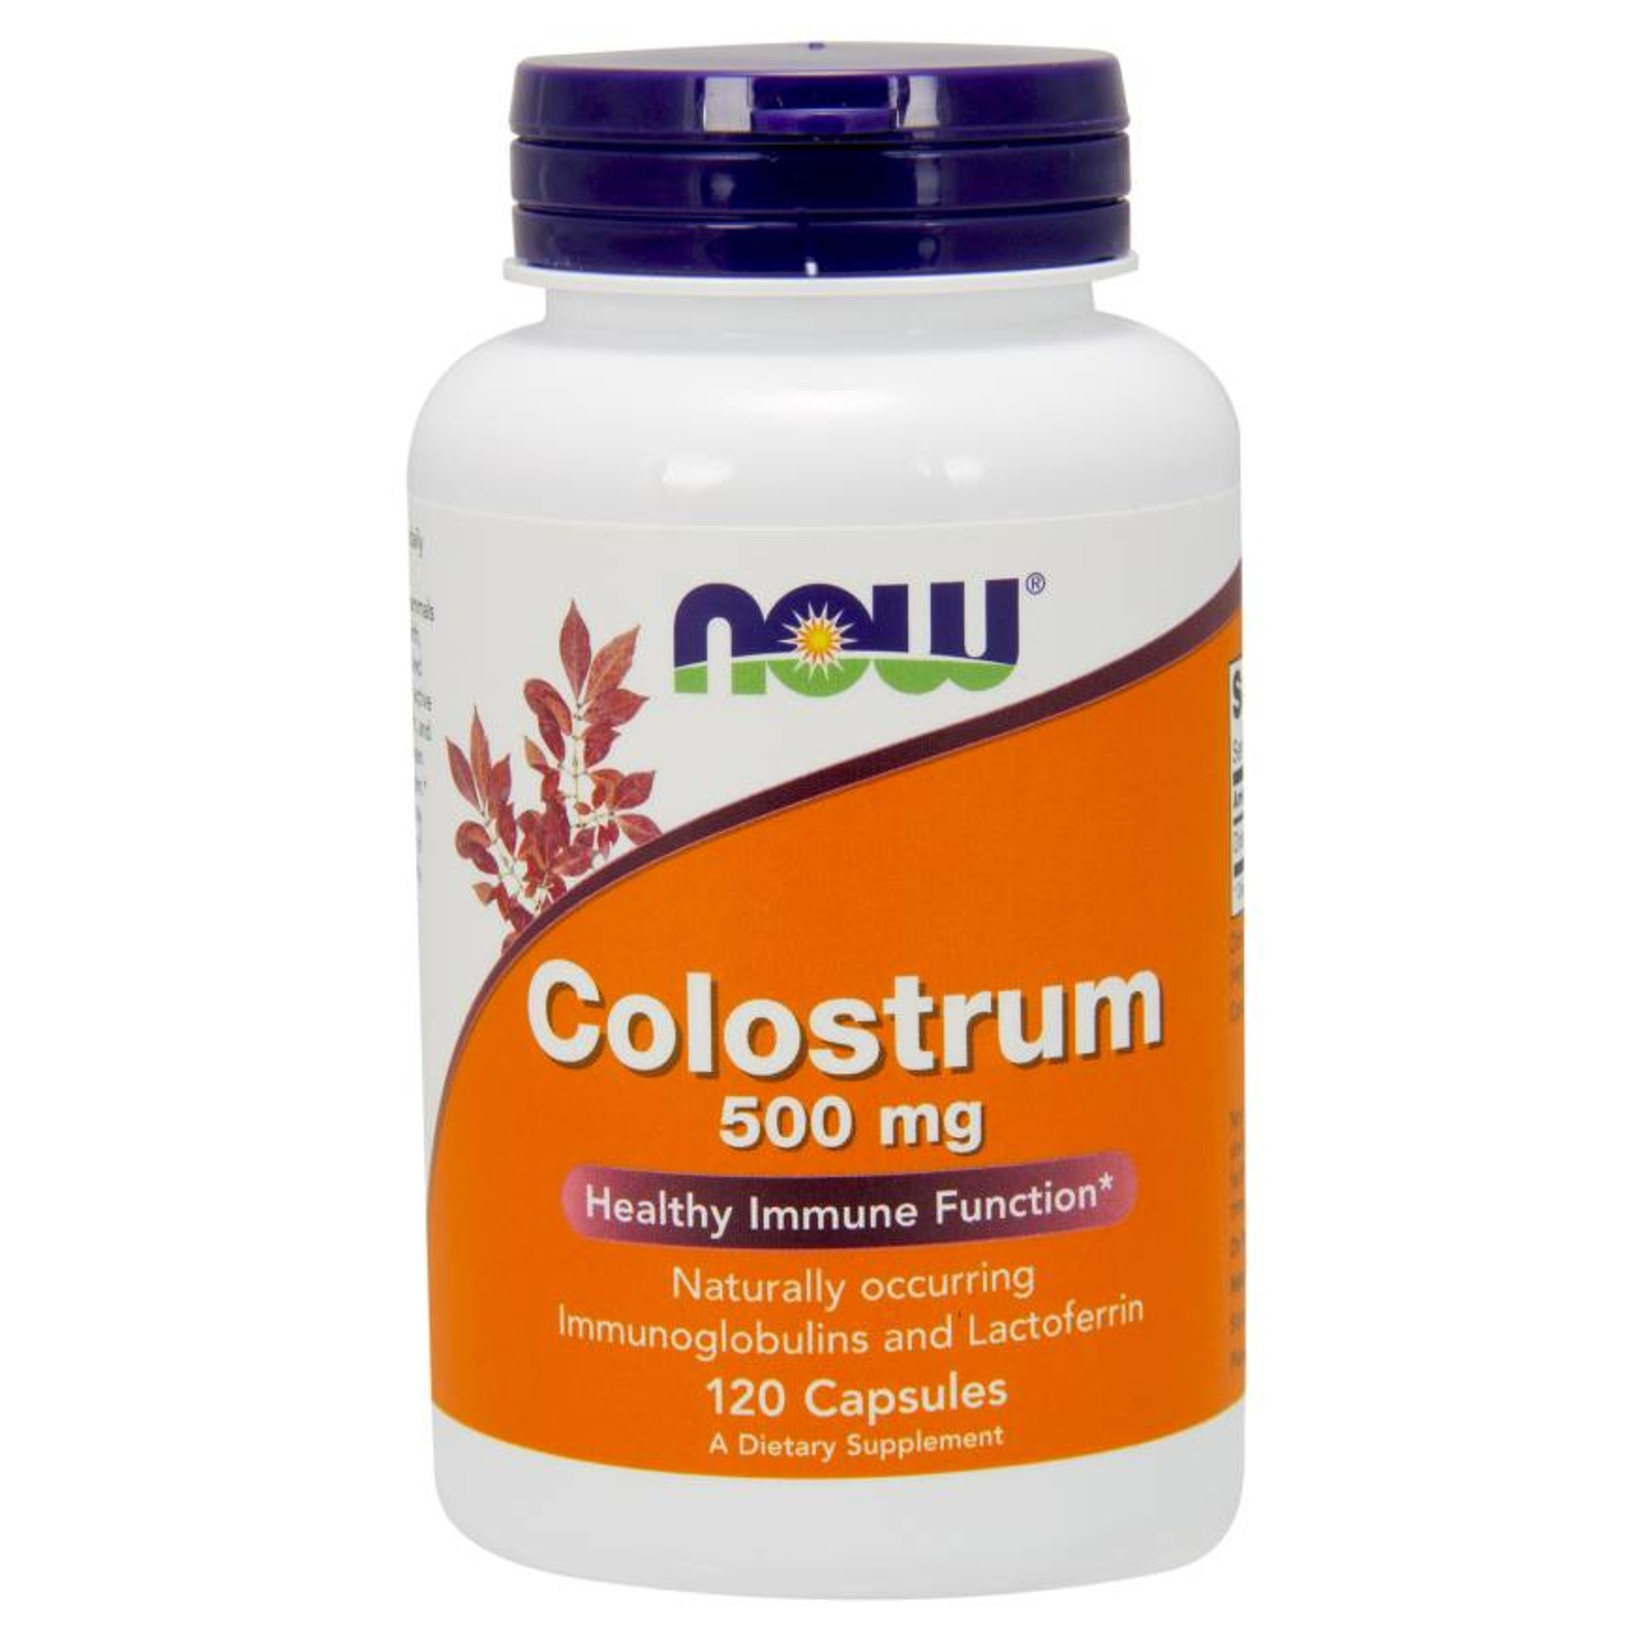 NOW NOW Colostrum 500mg 120caps